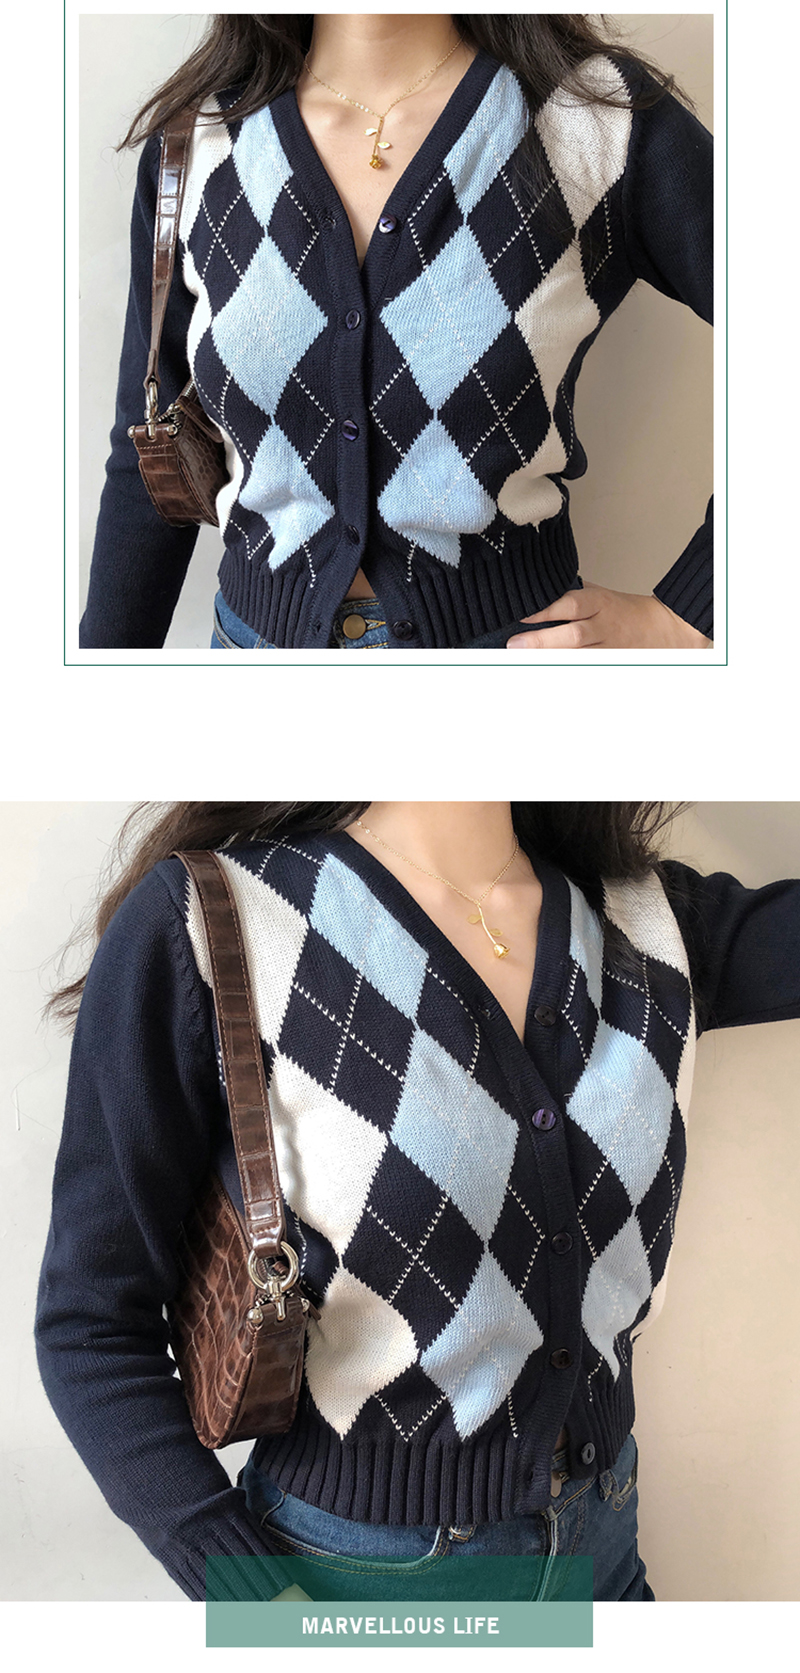 Vangull vintage women sweater geometric rhombic cardigan autumn warm long sleeve outerwear england style Argyle Sweater tops